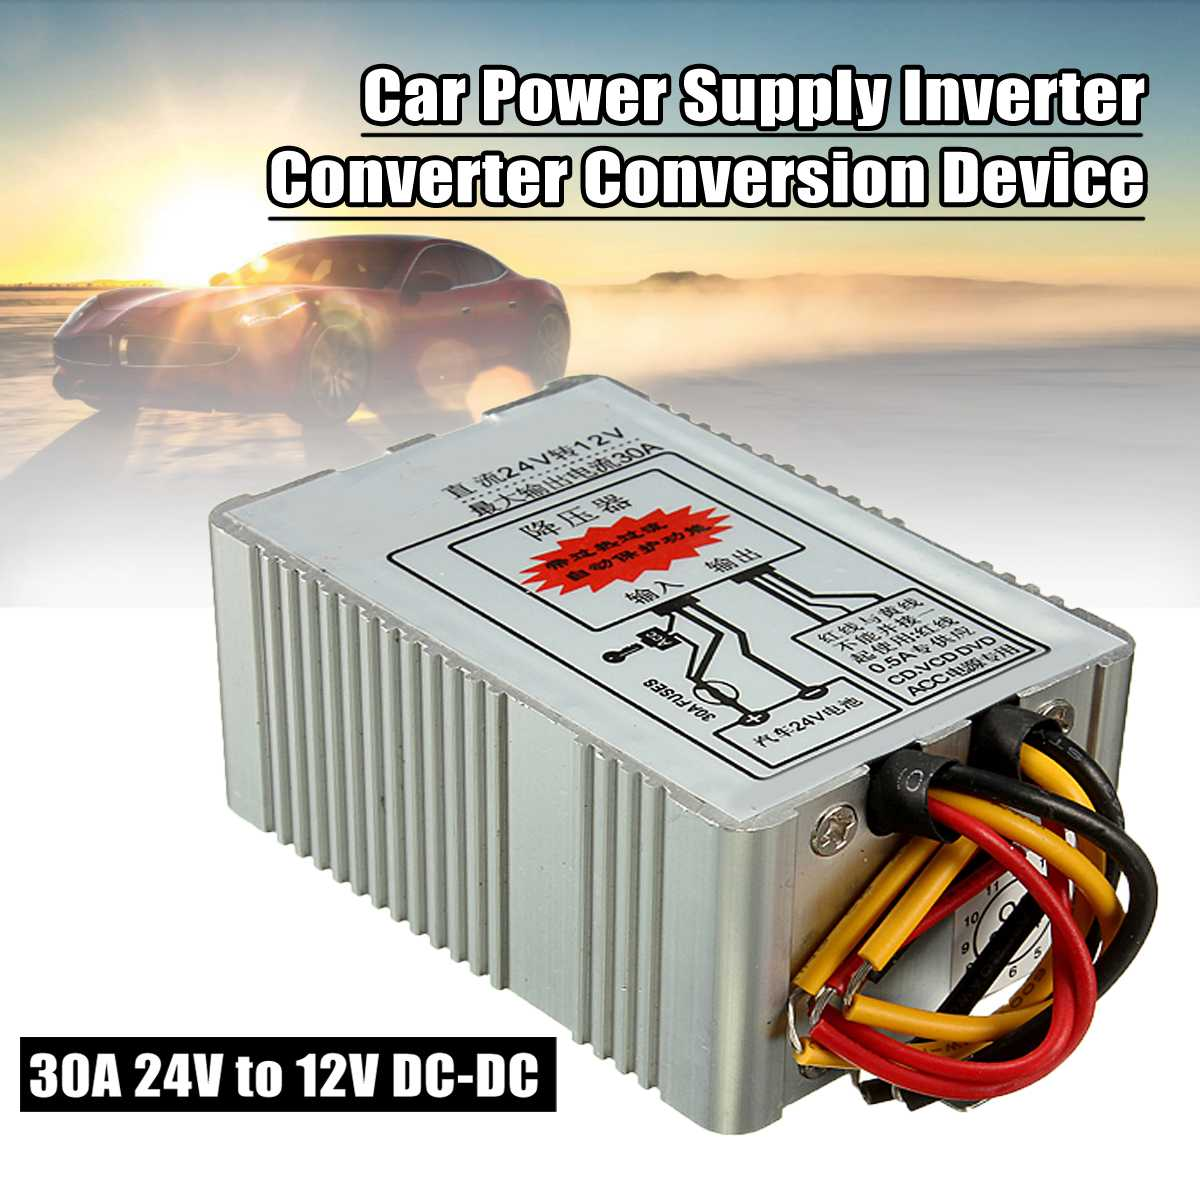 30A 24V To 12V DC-DC Car Power Supply Inverter Converter Conversion Device Home House Car Tool